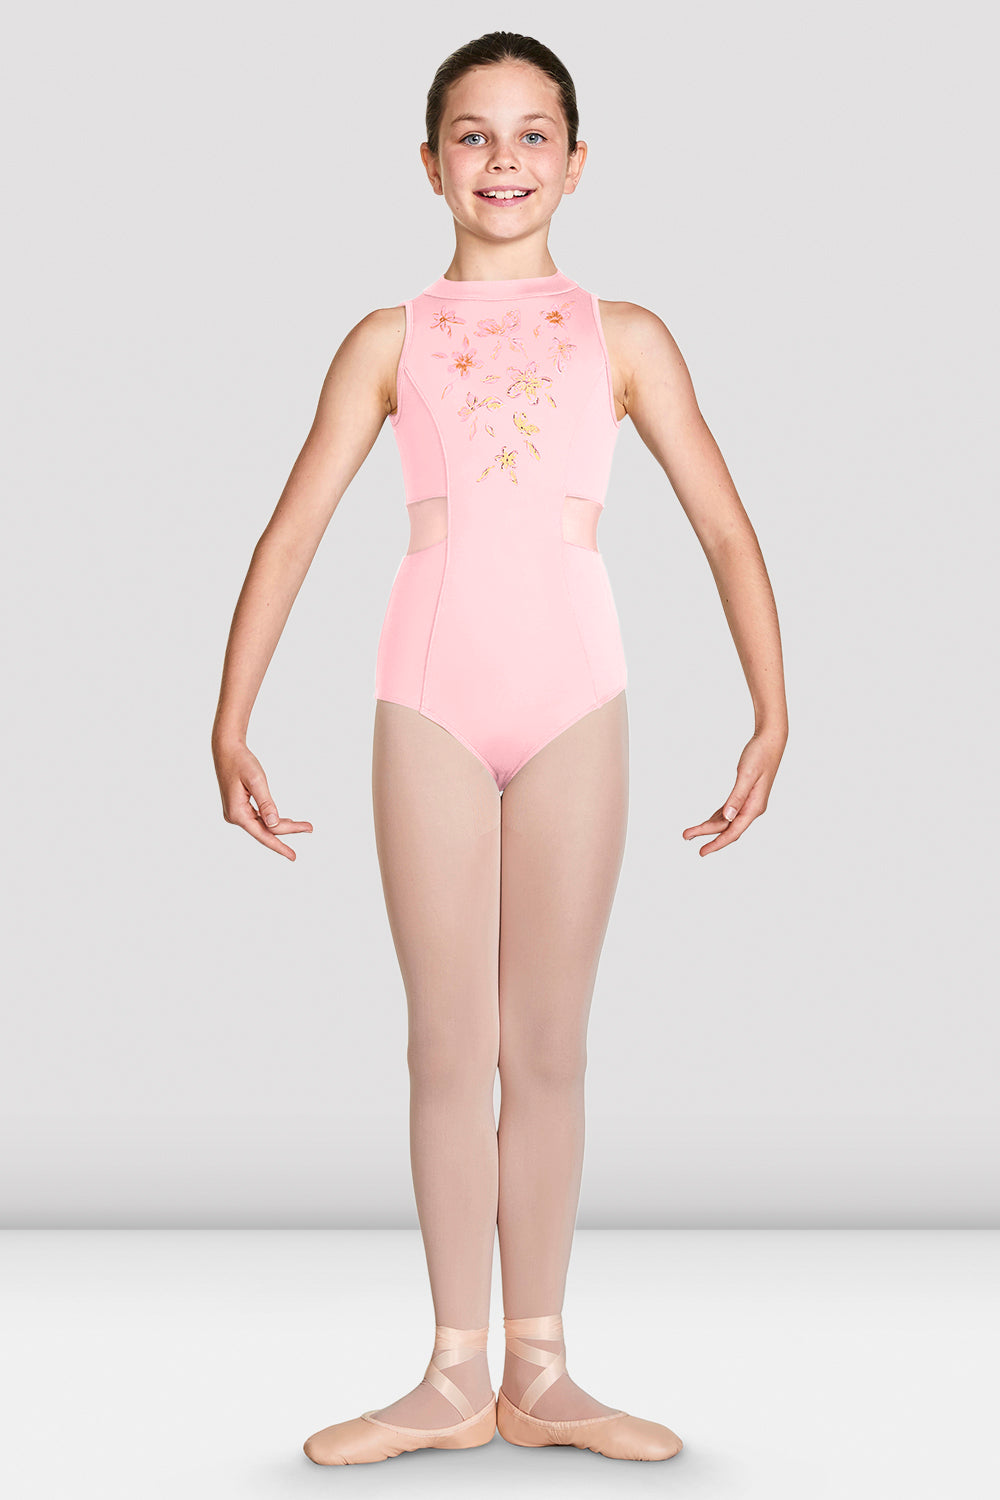 Candy Pink Bloch Girls Adrika High Neckline Zip Back Tank Leotard on female model in first position with arms in demi bras